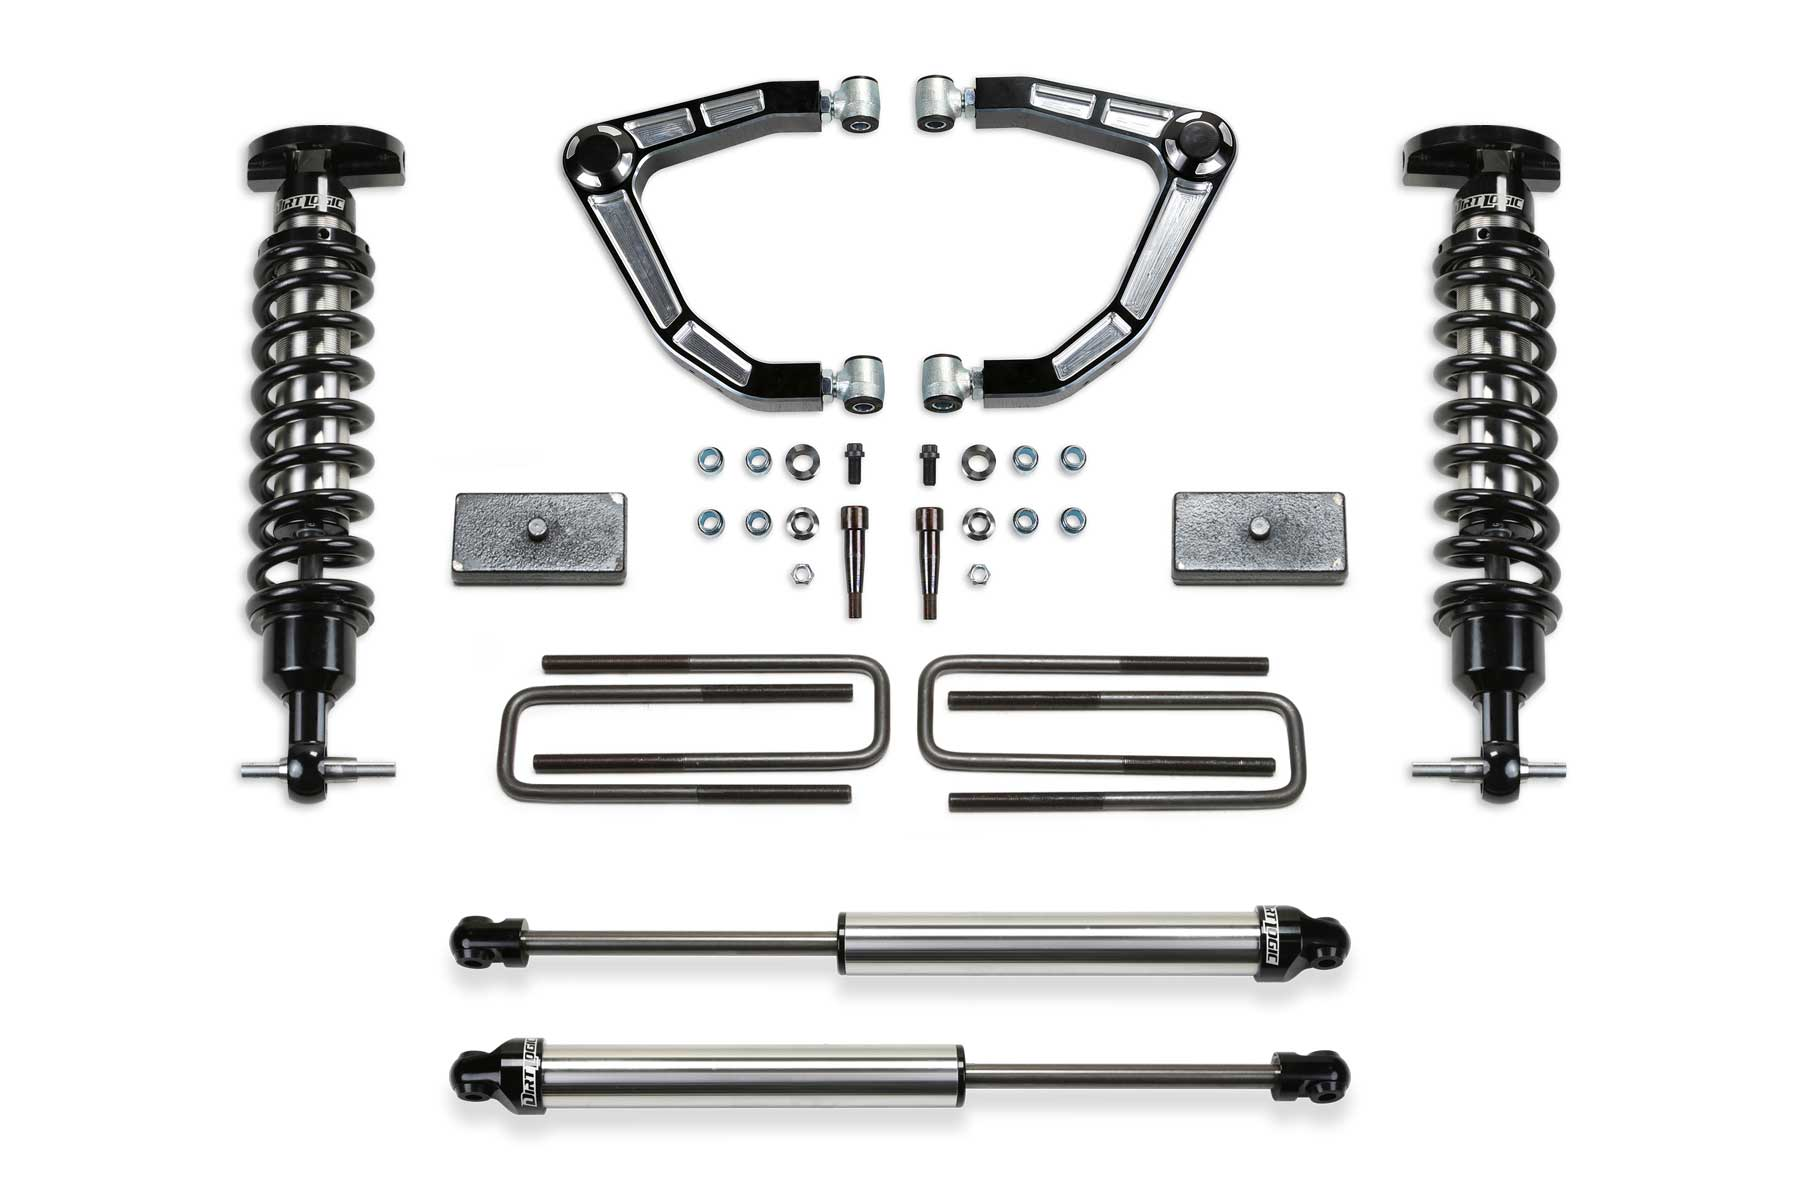 3 5 Aluminum Uniball Uca System W Bushing Rod Ends W Front Dirt Logic 2 5 Coilovers Amp Rear